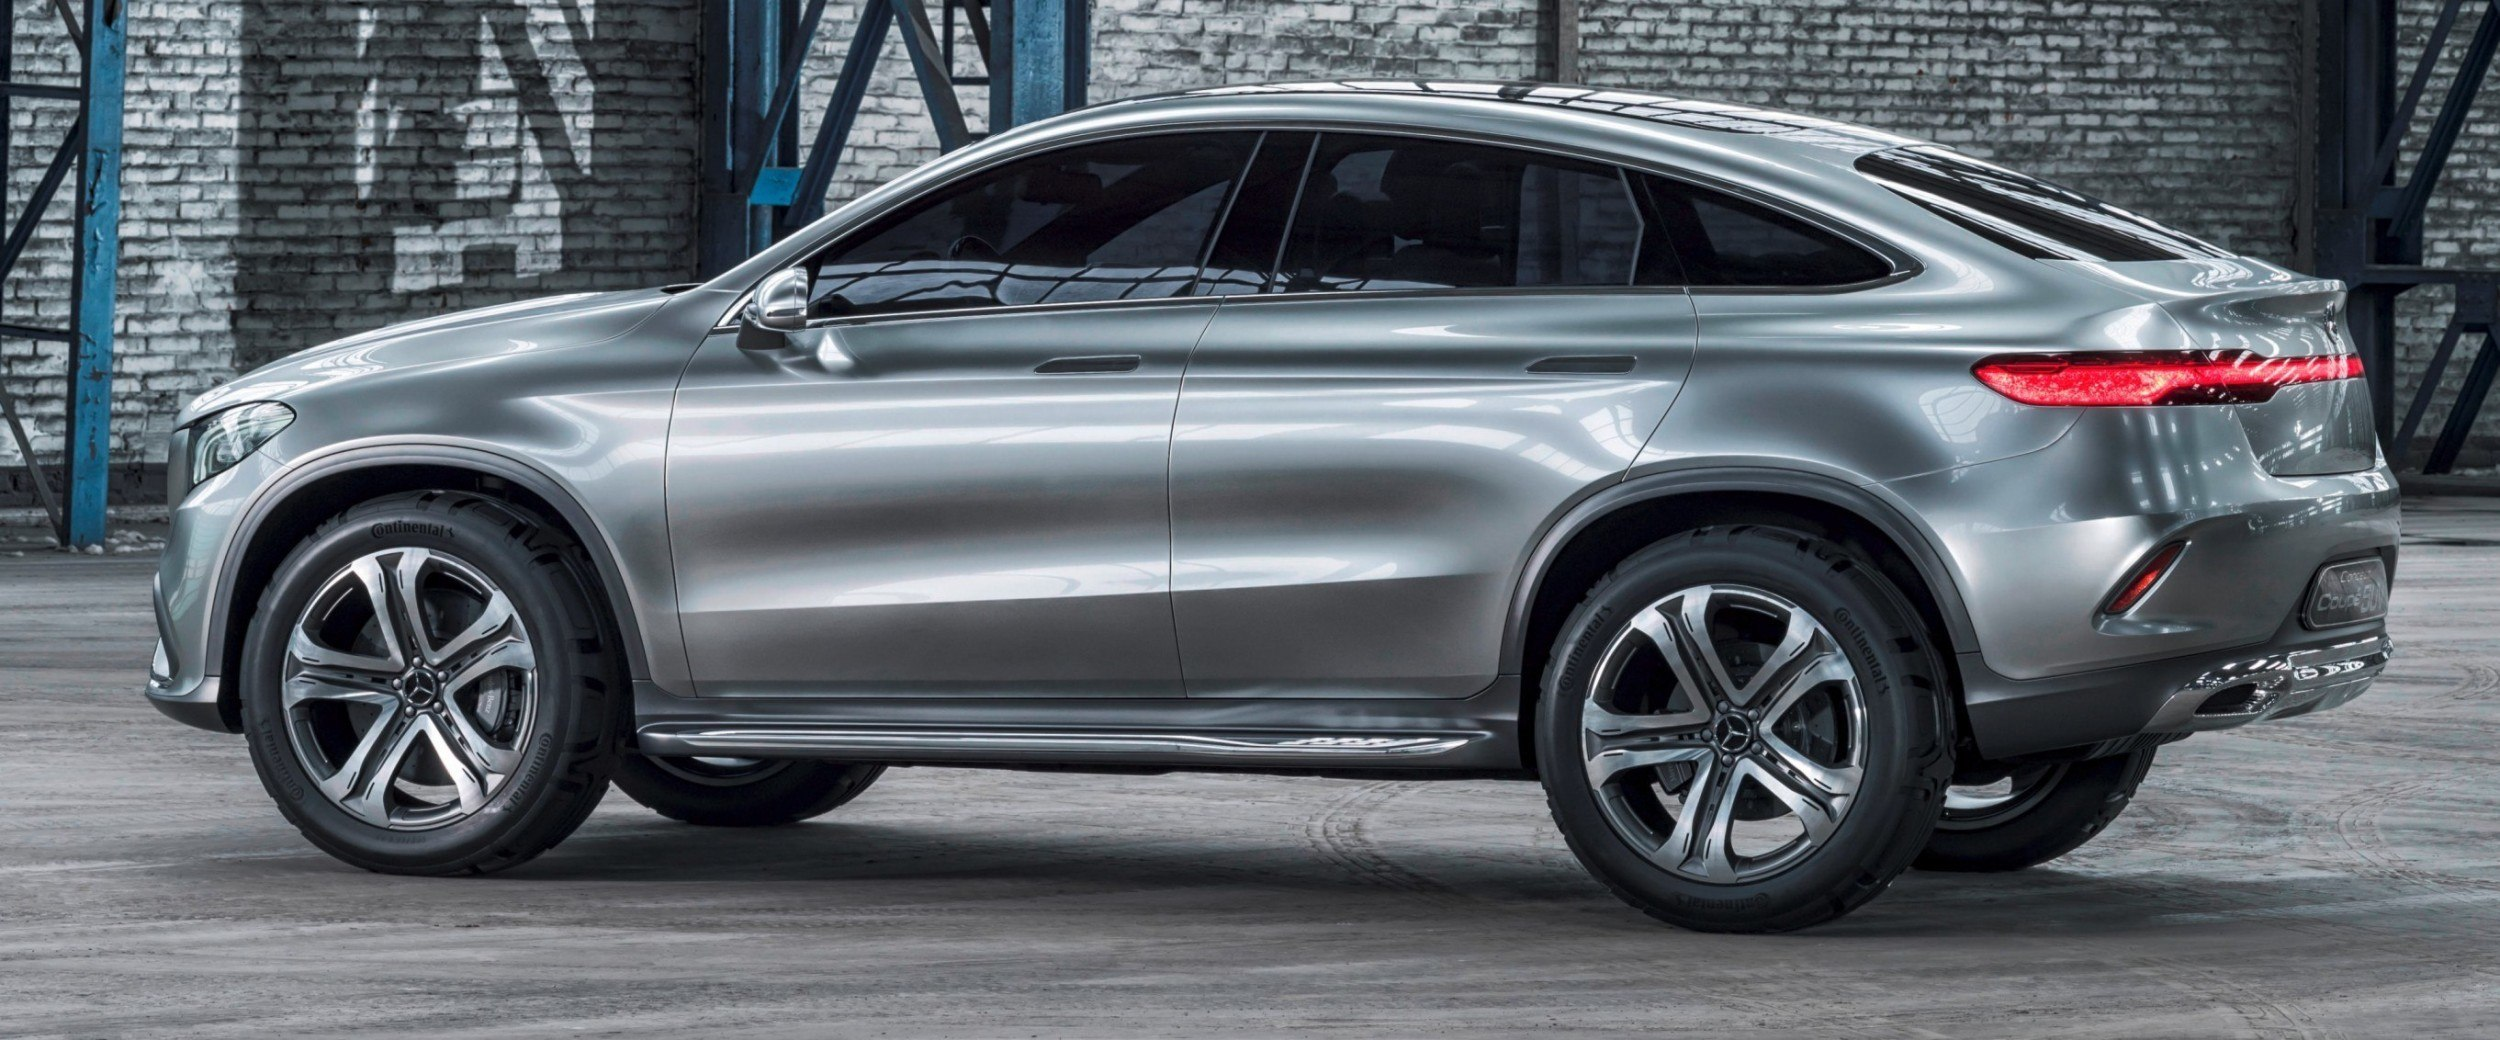 New Mercedes Suv >> Mercedes Benz Concept Coupe Suv Beijing 2014 Sets New Design